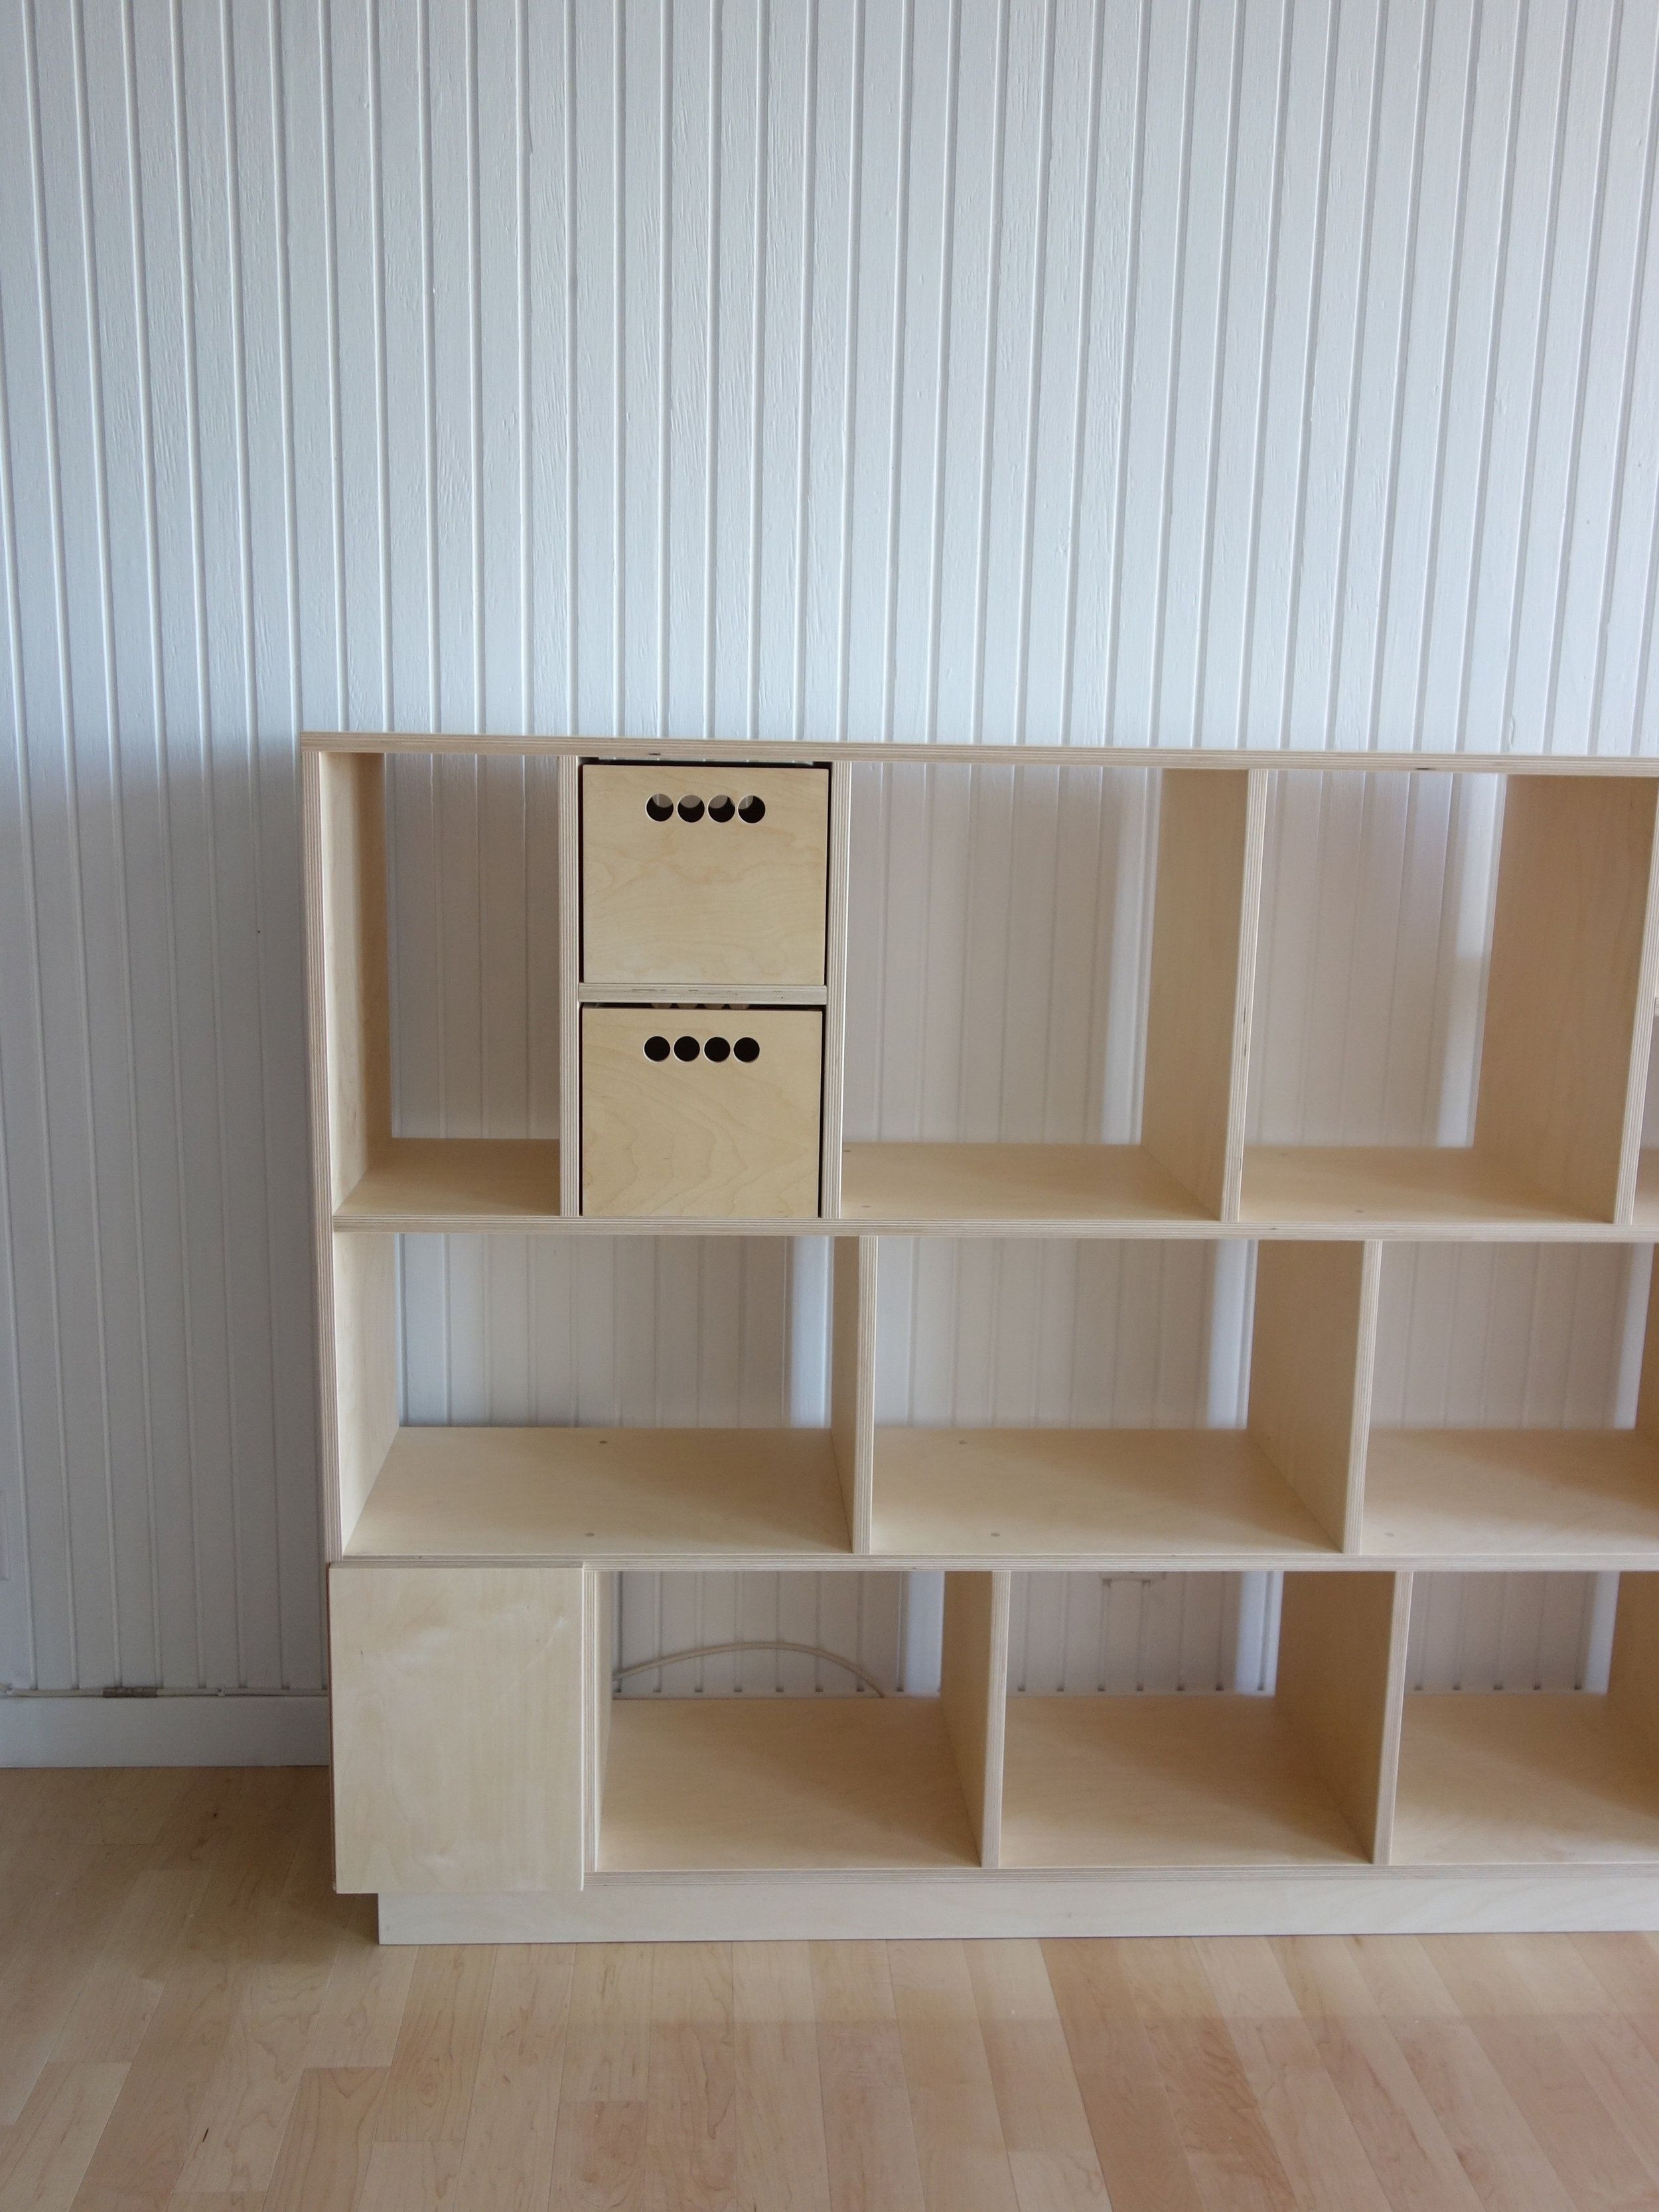 Record Shelving product image 2